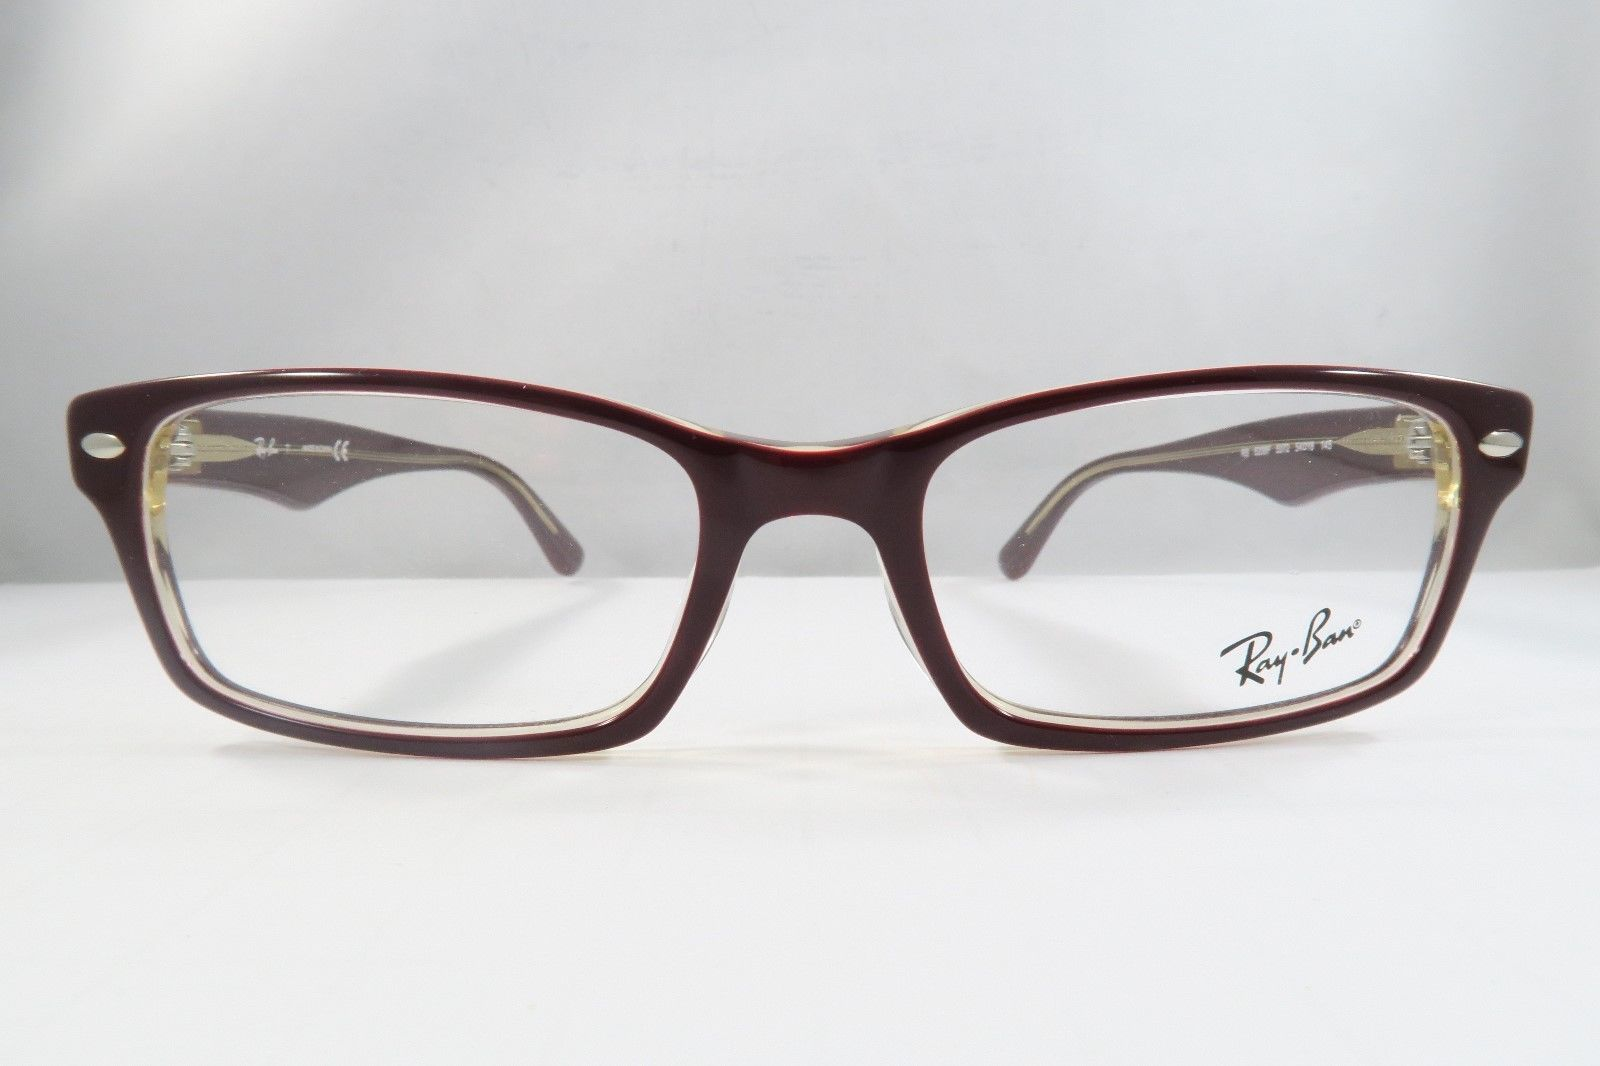 3e38091cbe5 Ray Ban RB 5206 5372 Eyeglasses Red on Beige and 50 similar items. 57